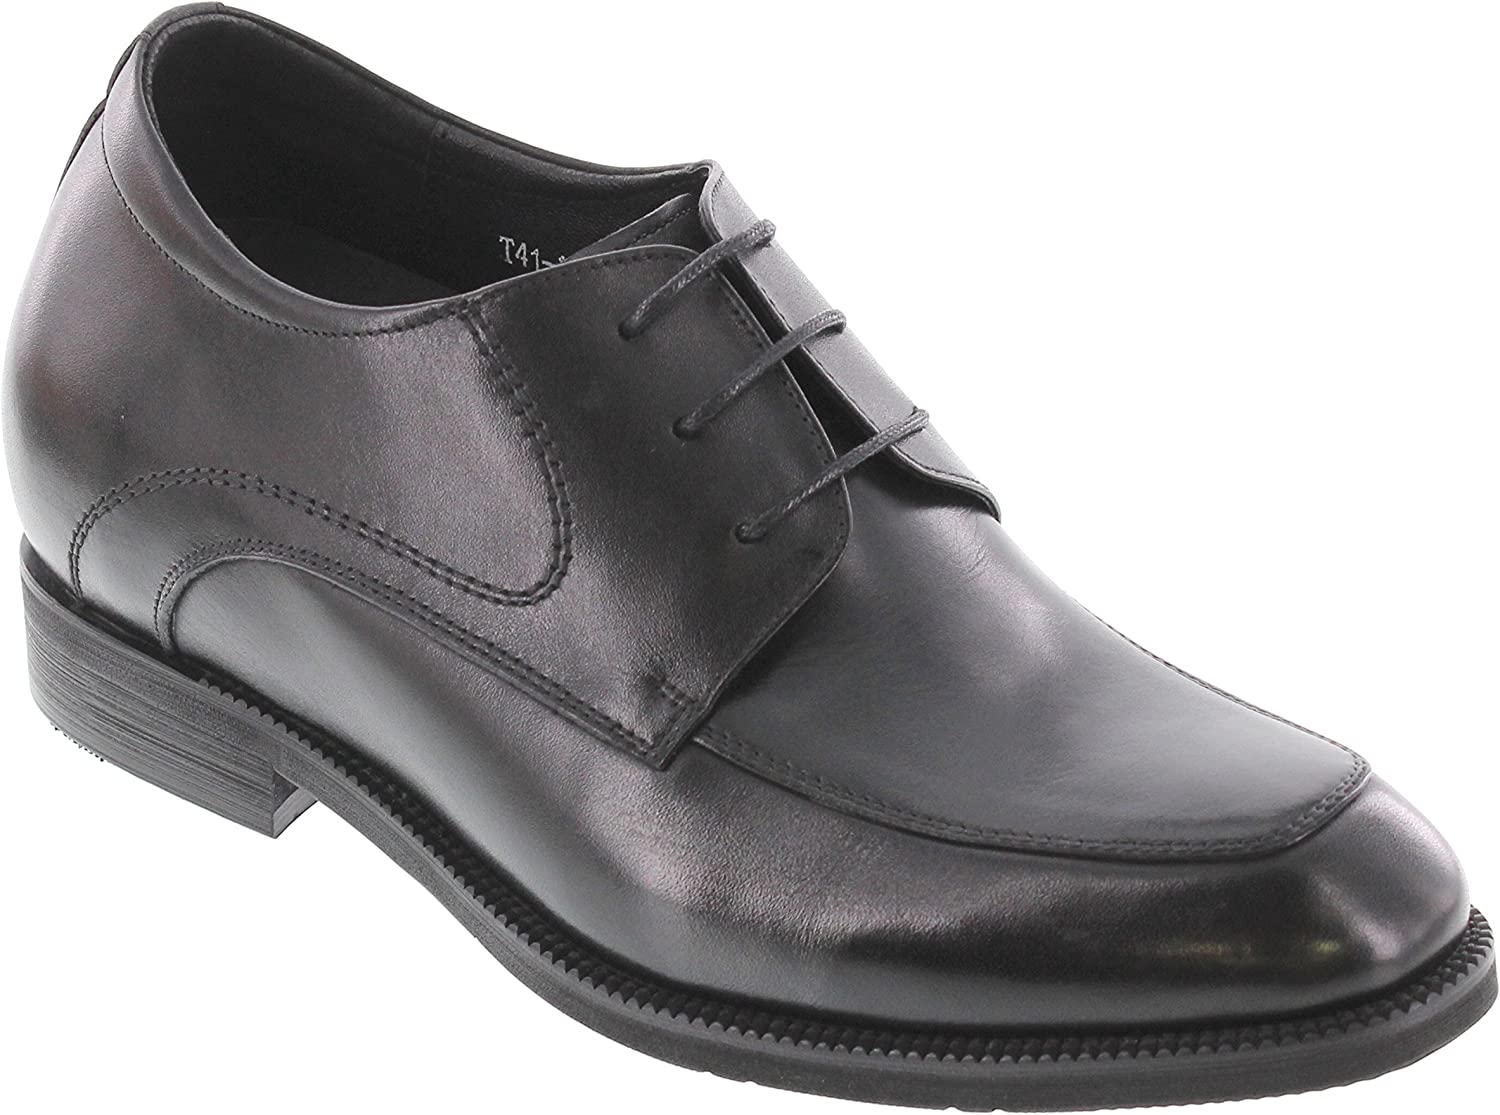 CALTO Men's Invisible Height Increasing Elevator shoes - Black Premium Leather Lace-up Formal Oxfords - 3 Inches Taller - T4101